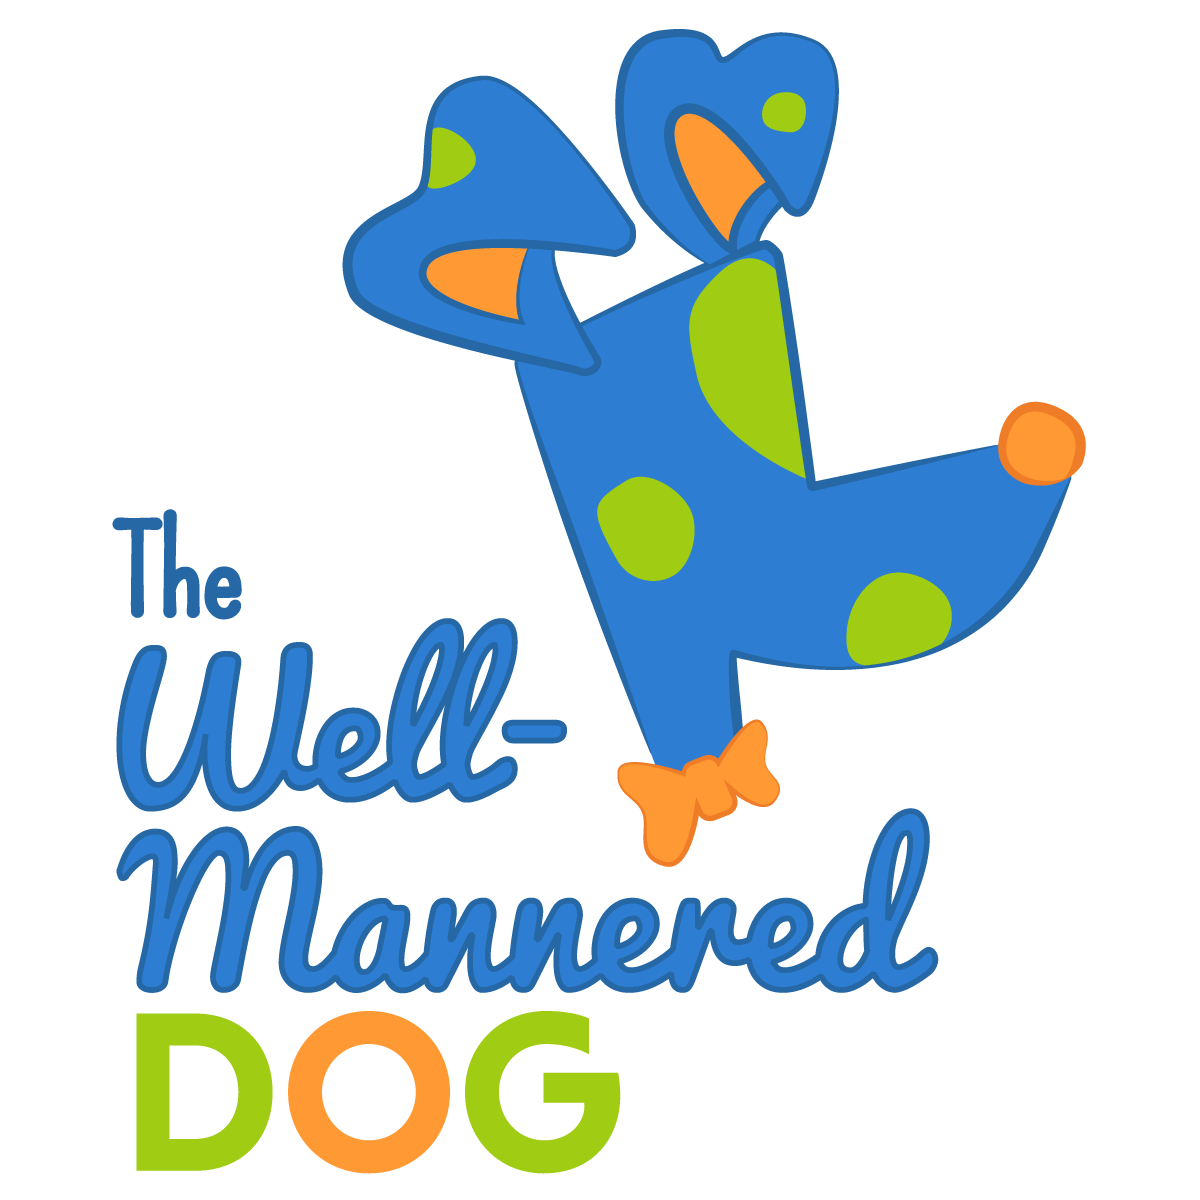 Legal the well mannered. Student clipart obedient